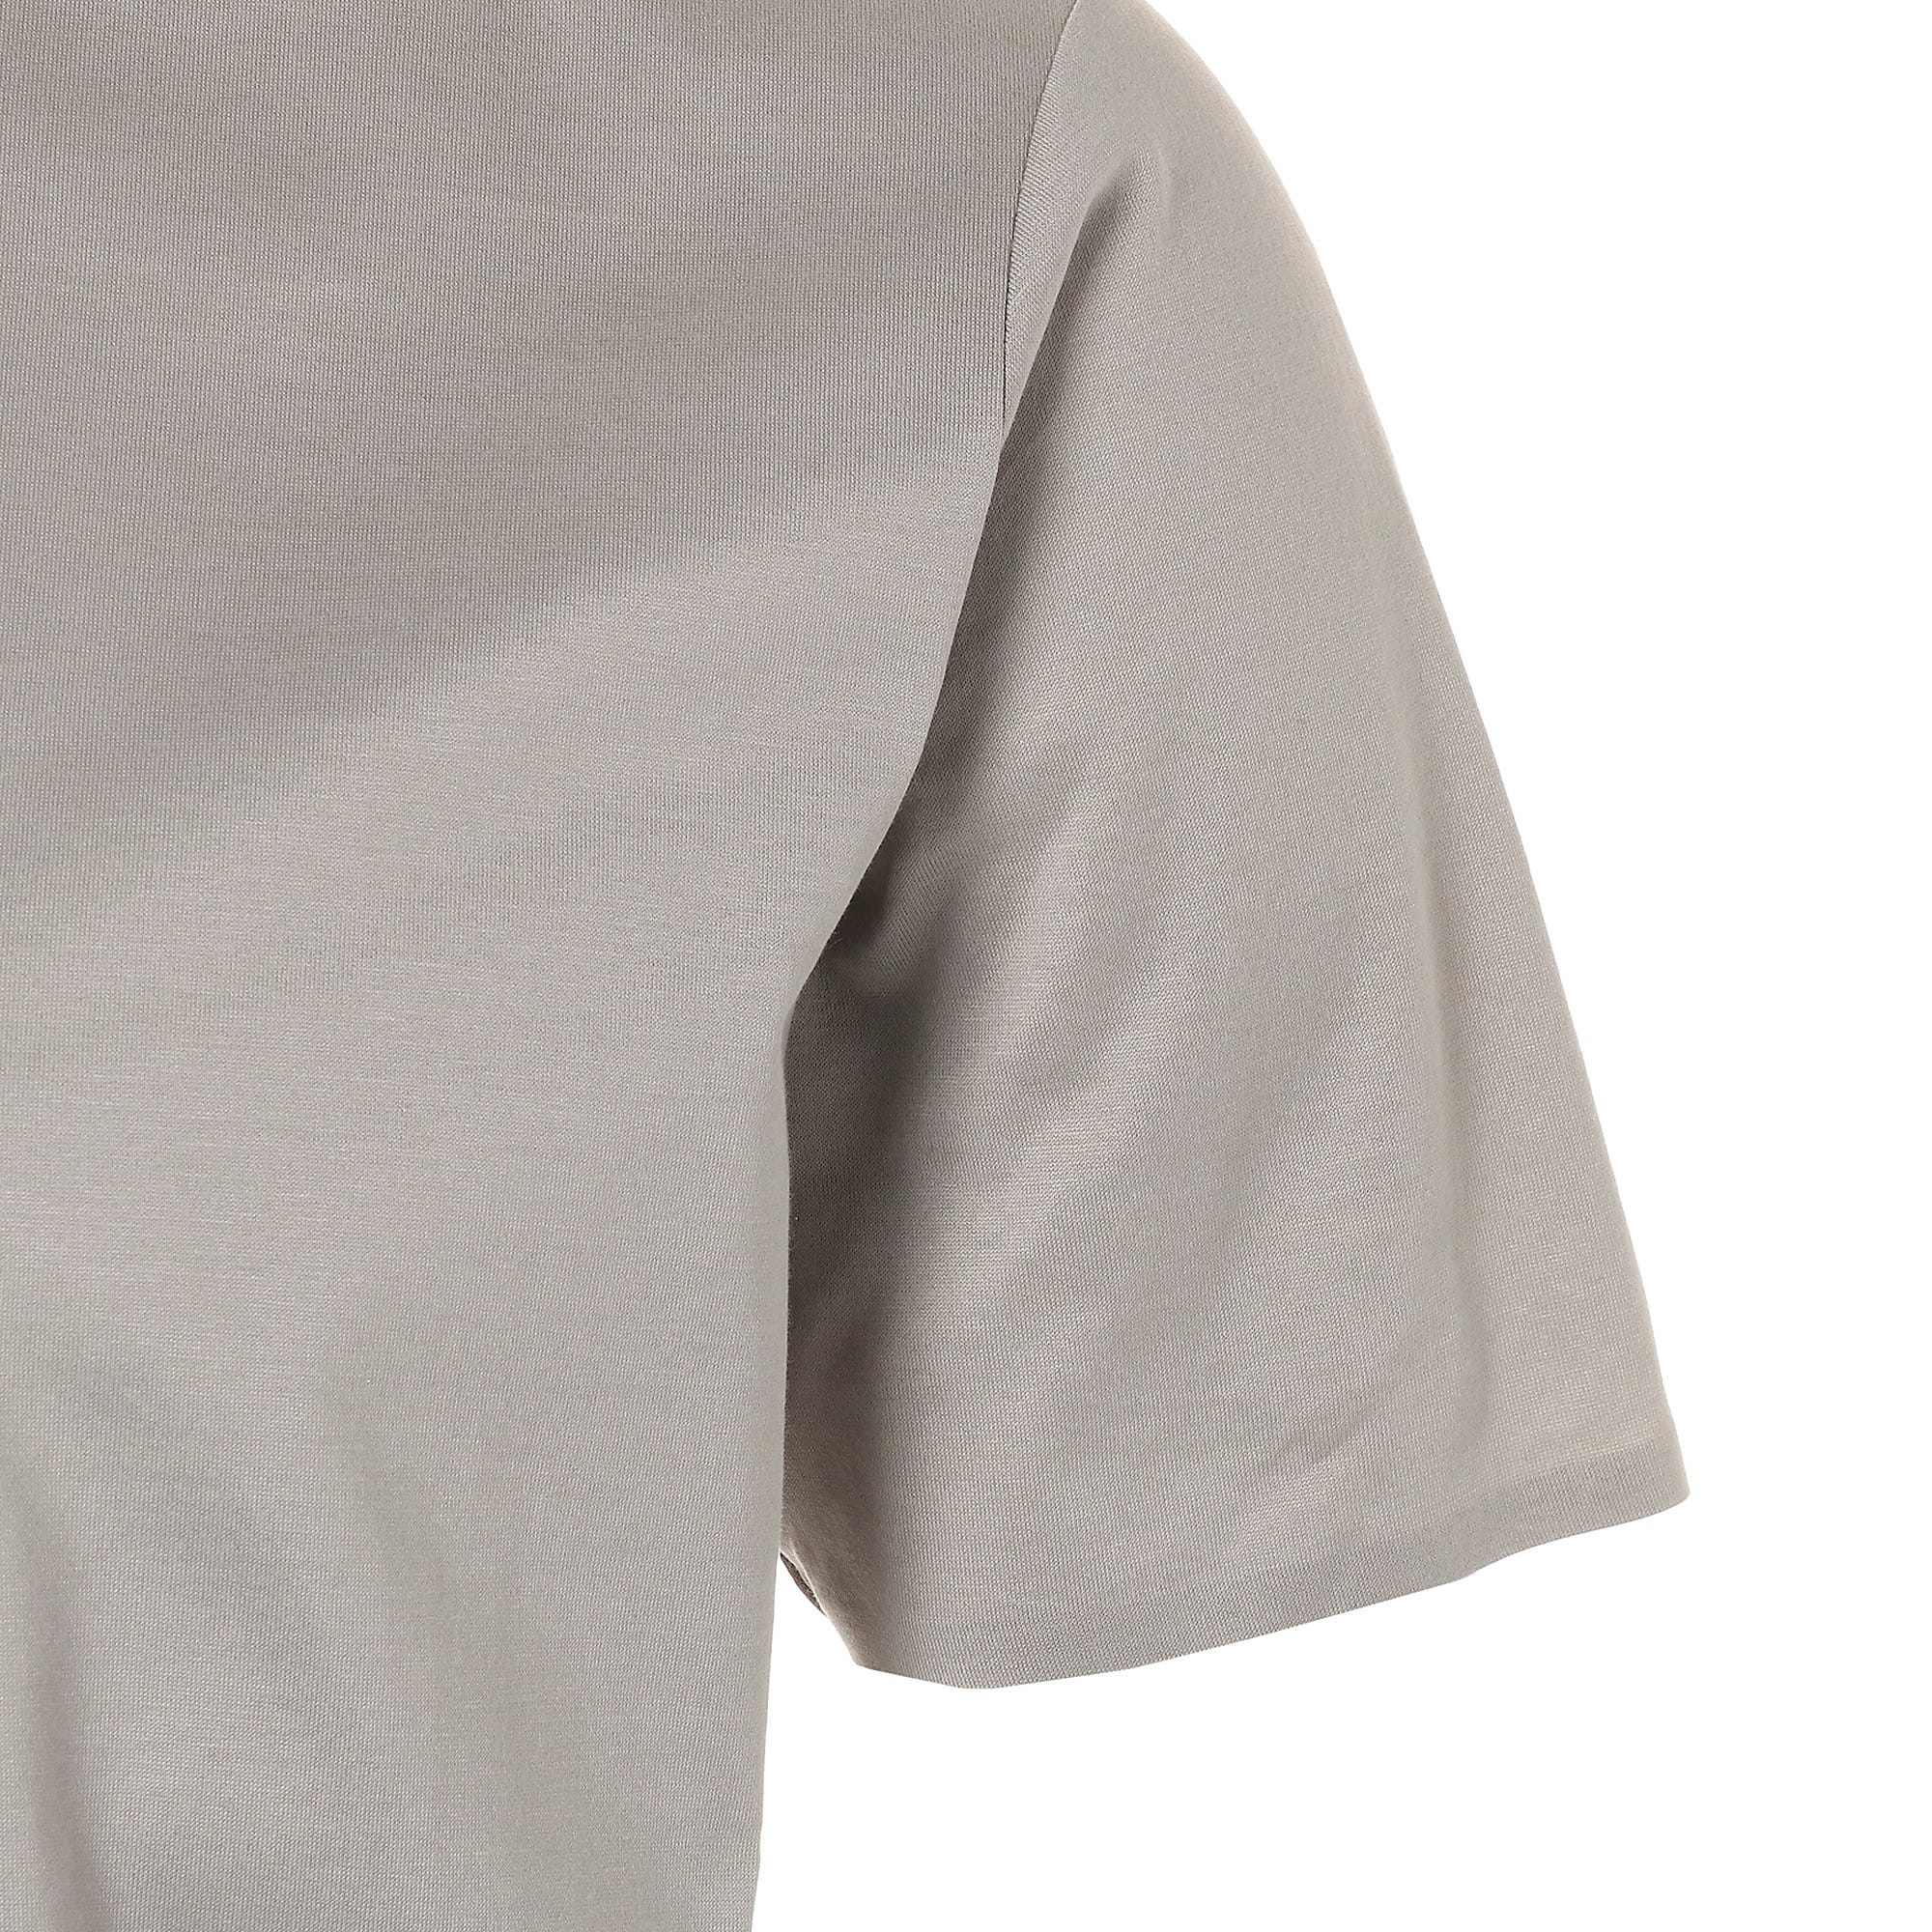 Thumbnail 5 of PORSCHE DESIGN  ライフ Tシャツ, Limestone, medium-JPN